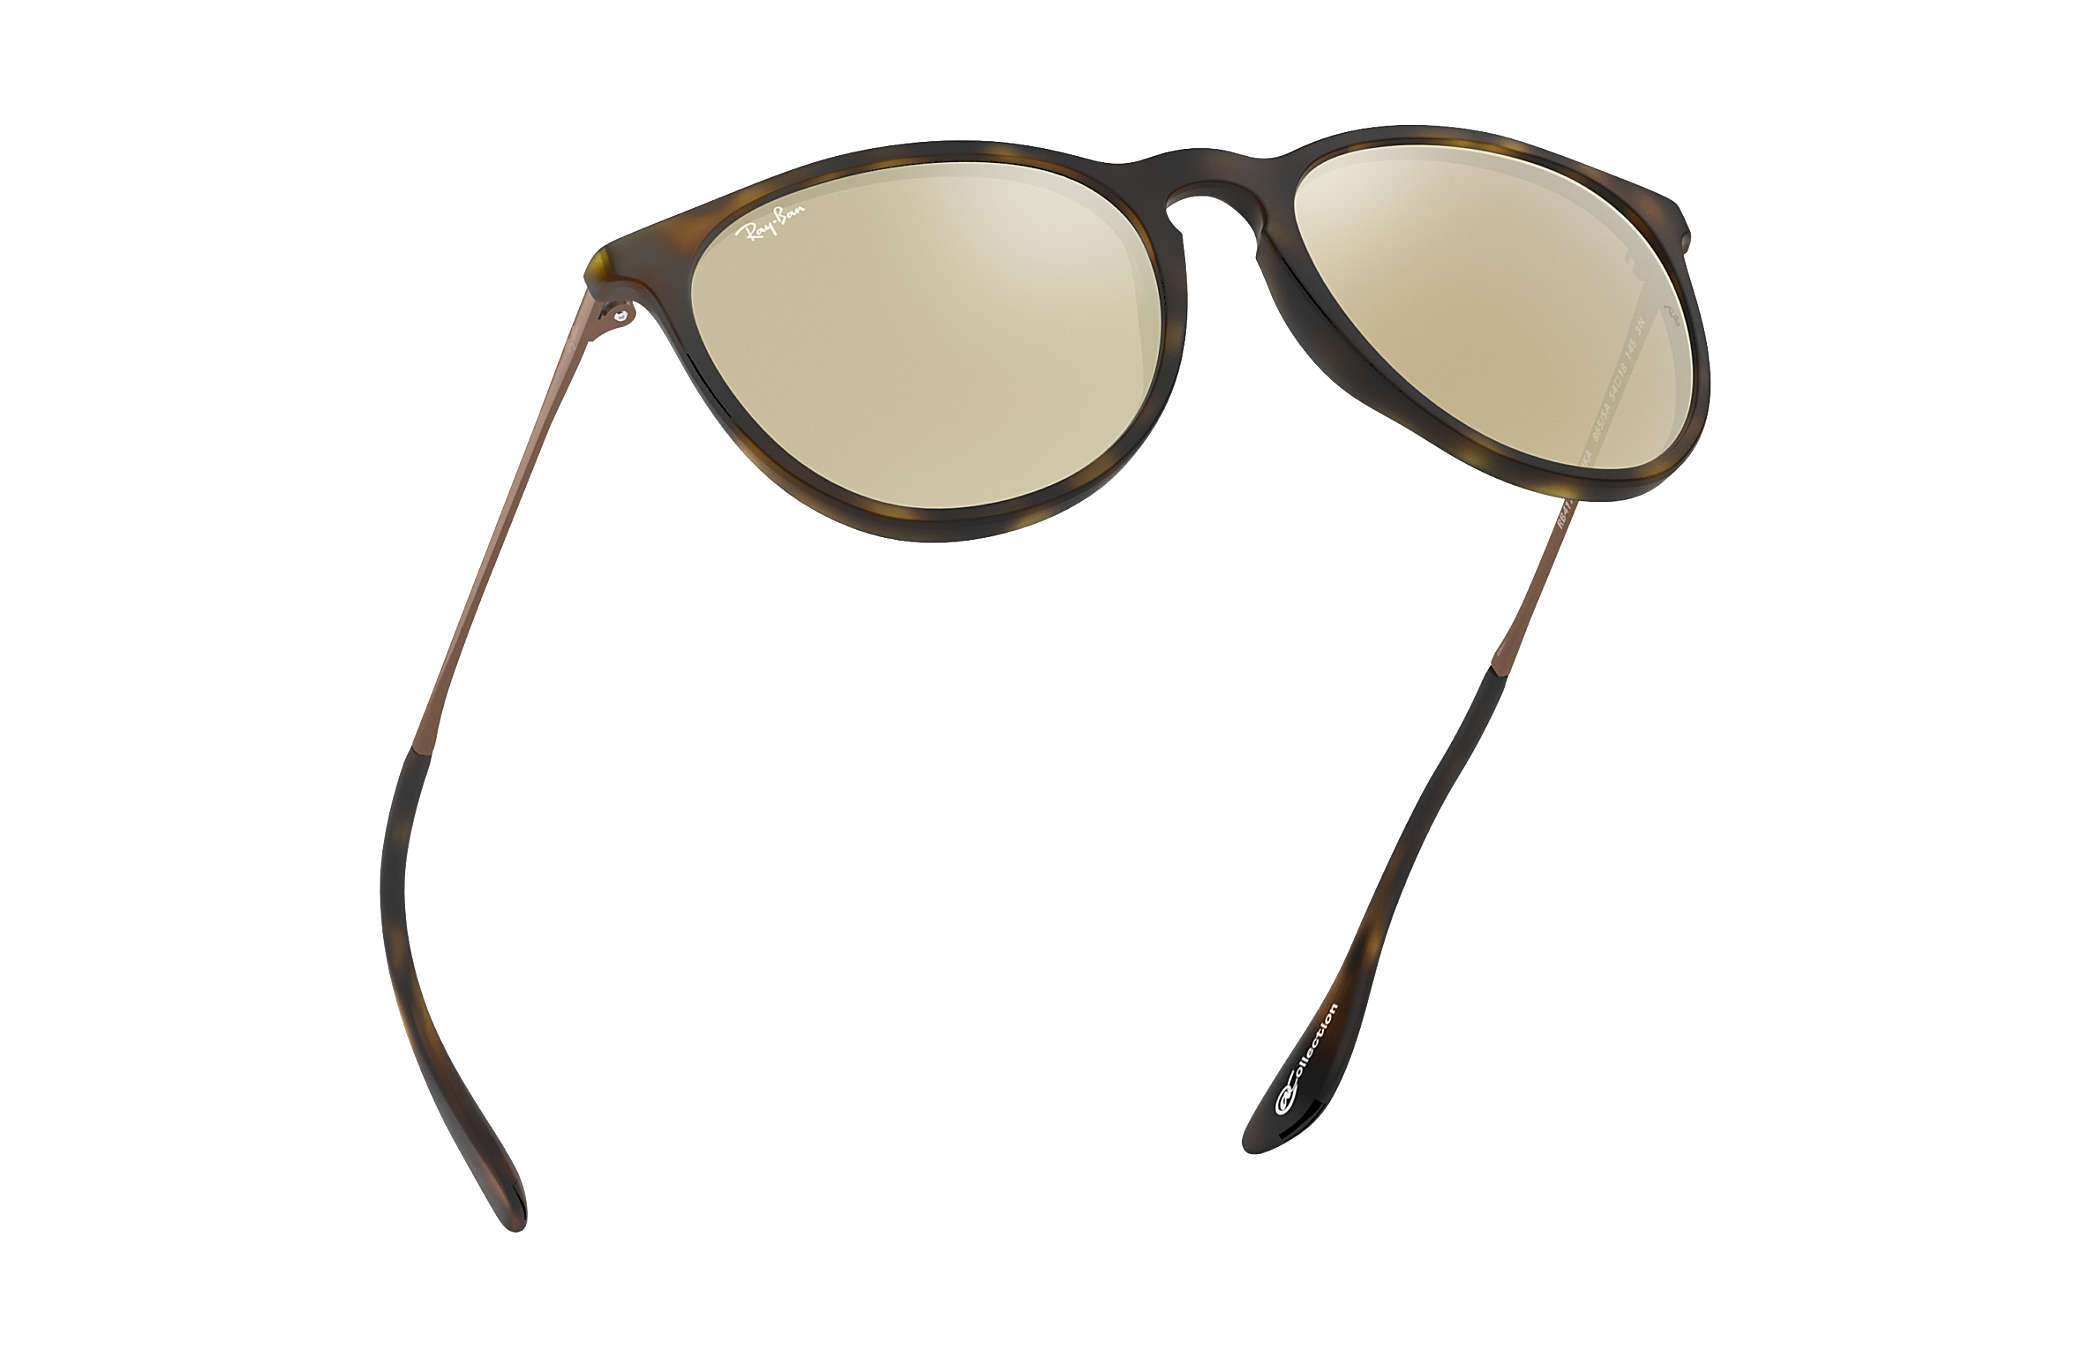 dfb4881fff Ray-Ban Erika  collection RB4171 Tortoise - Nylon - Gold Lenses ...